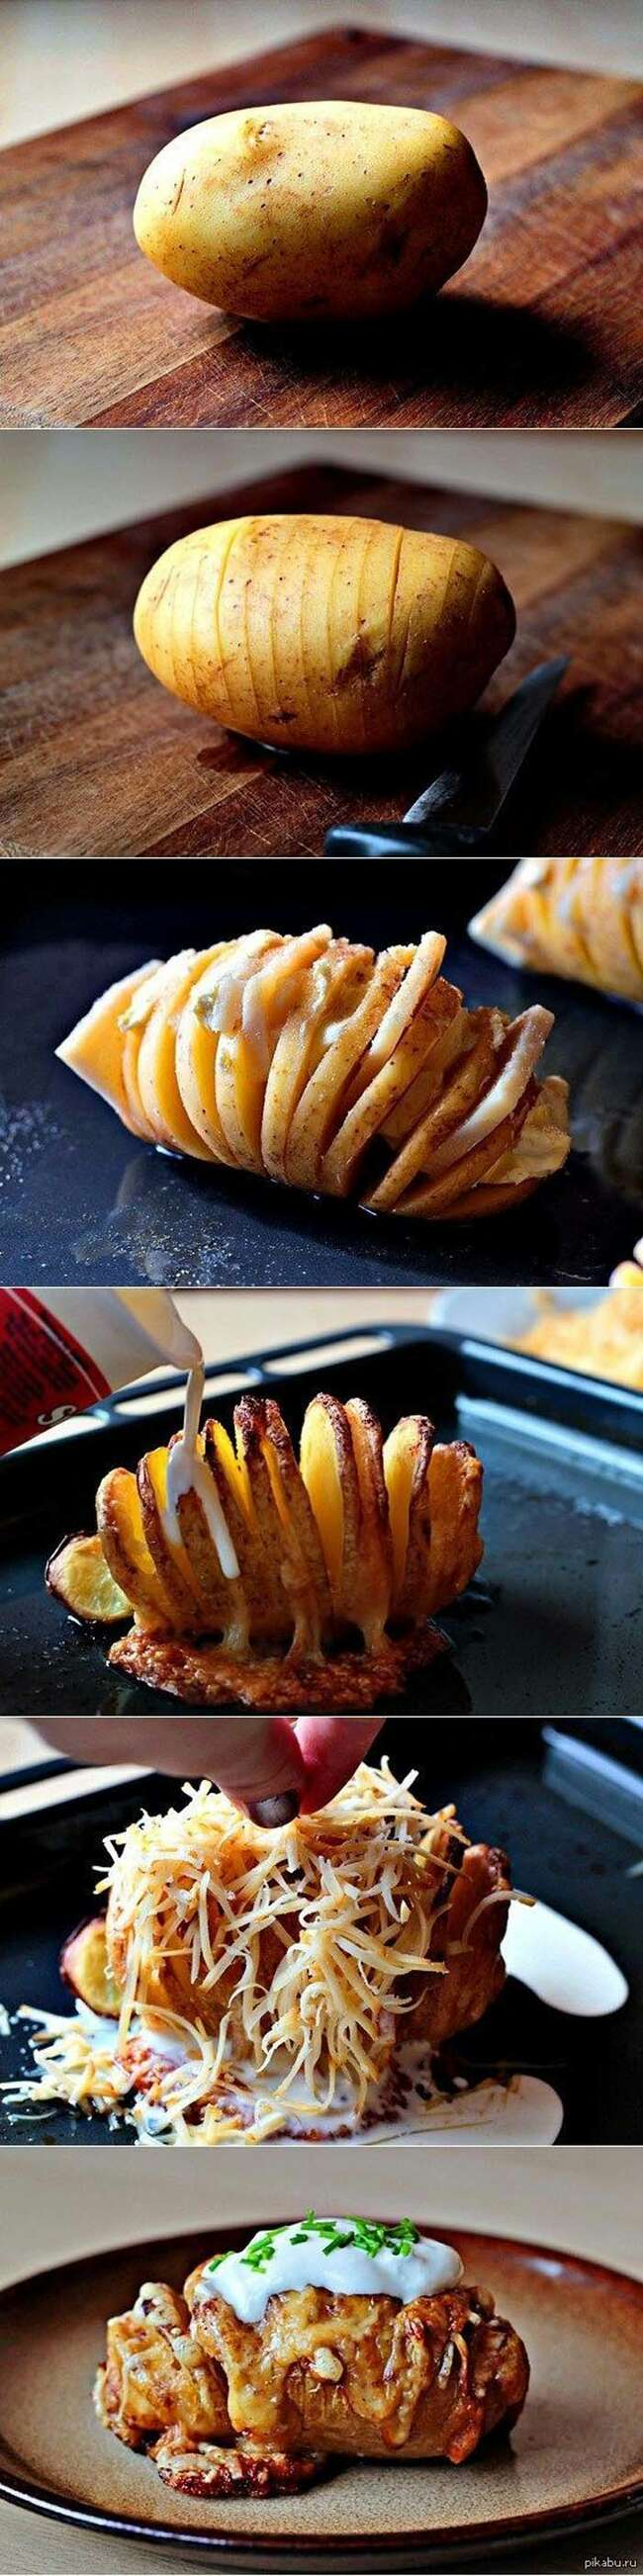 Slice up a potato then add your toppings before baking.